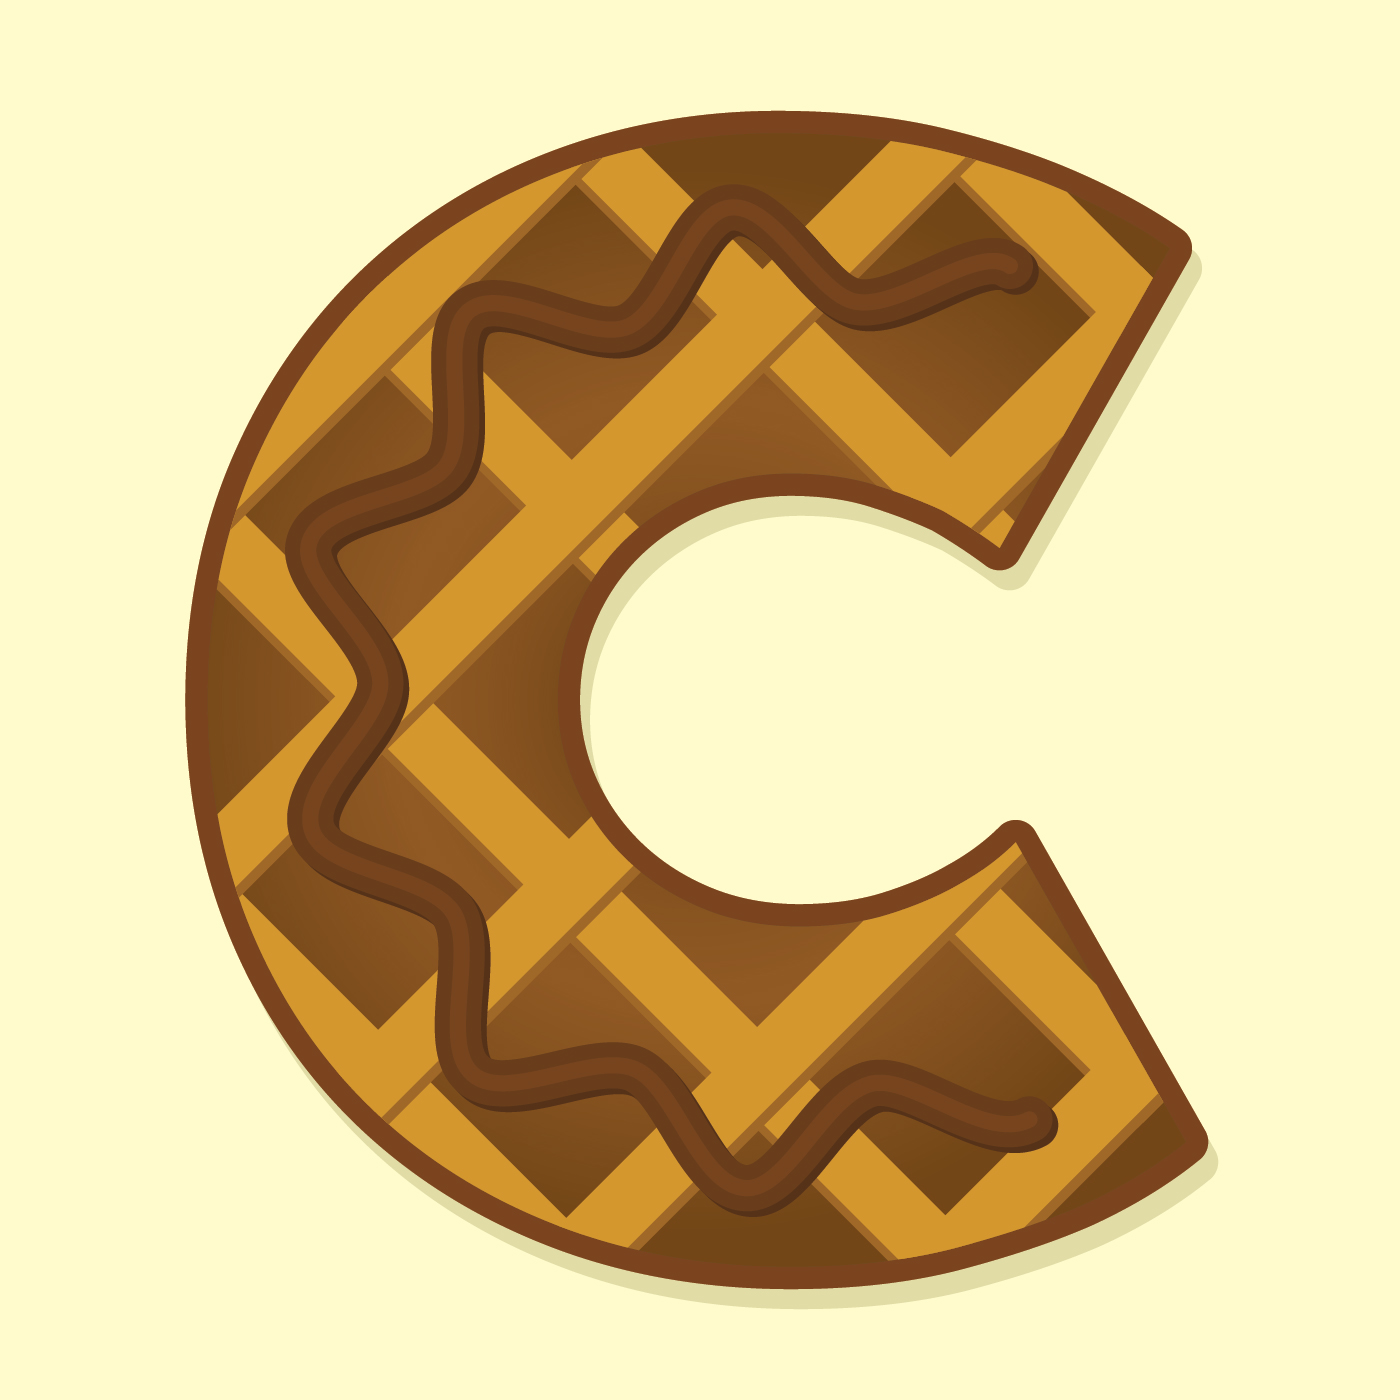 Letter C Typography Download Free Vectors Clipart